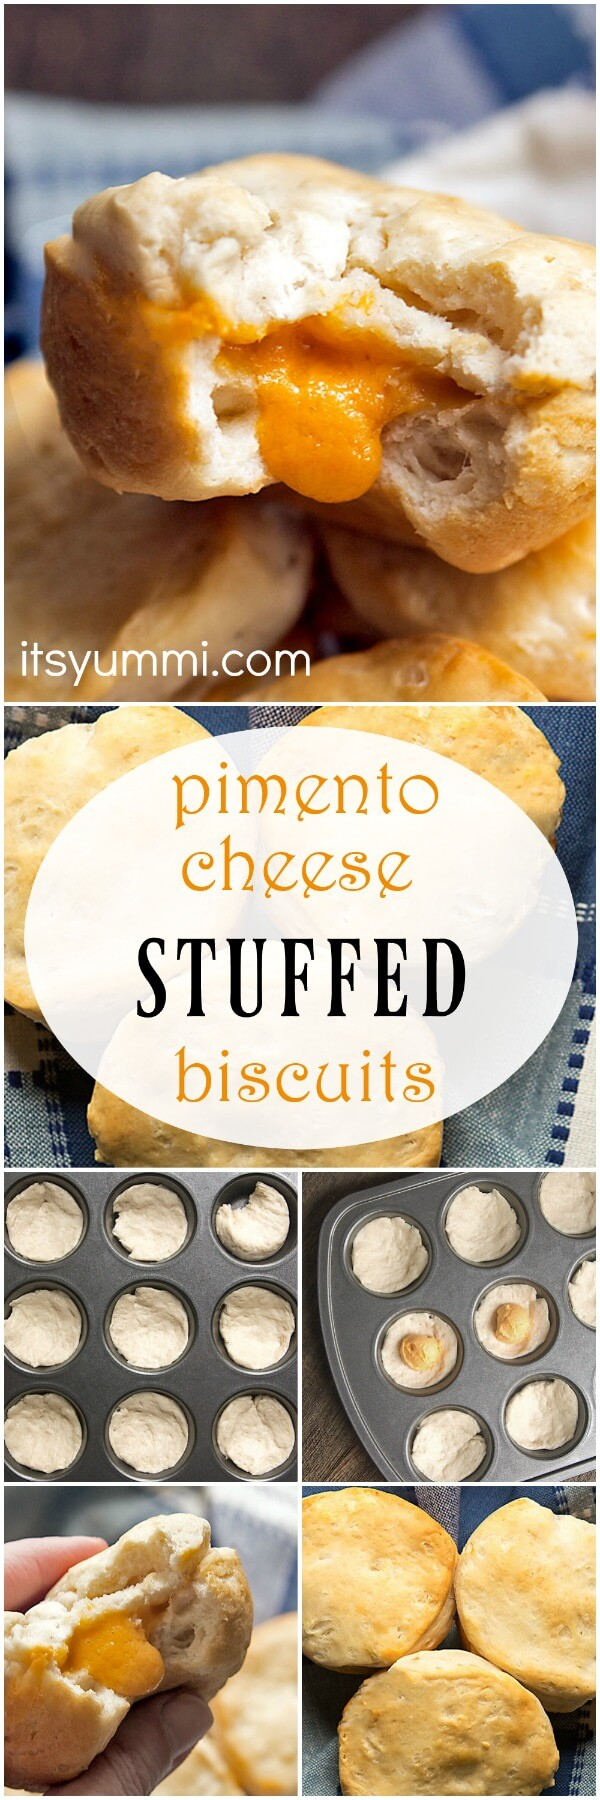 Pimento Cheese Stuffed Buttermilk Biscuits - quick and easy biscuits recipe! Semi-homemade OR made from scratch. #biscuits #southern_food